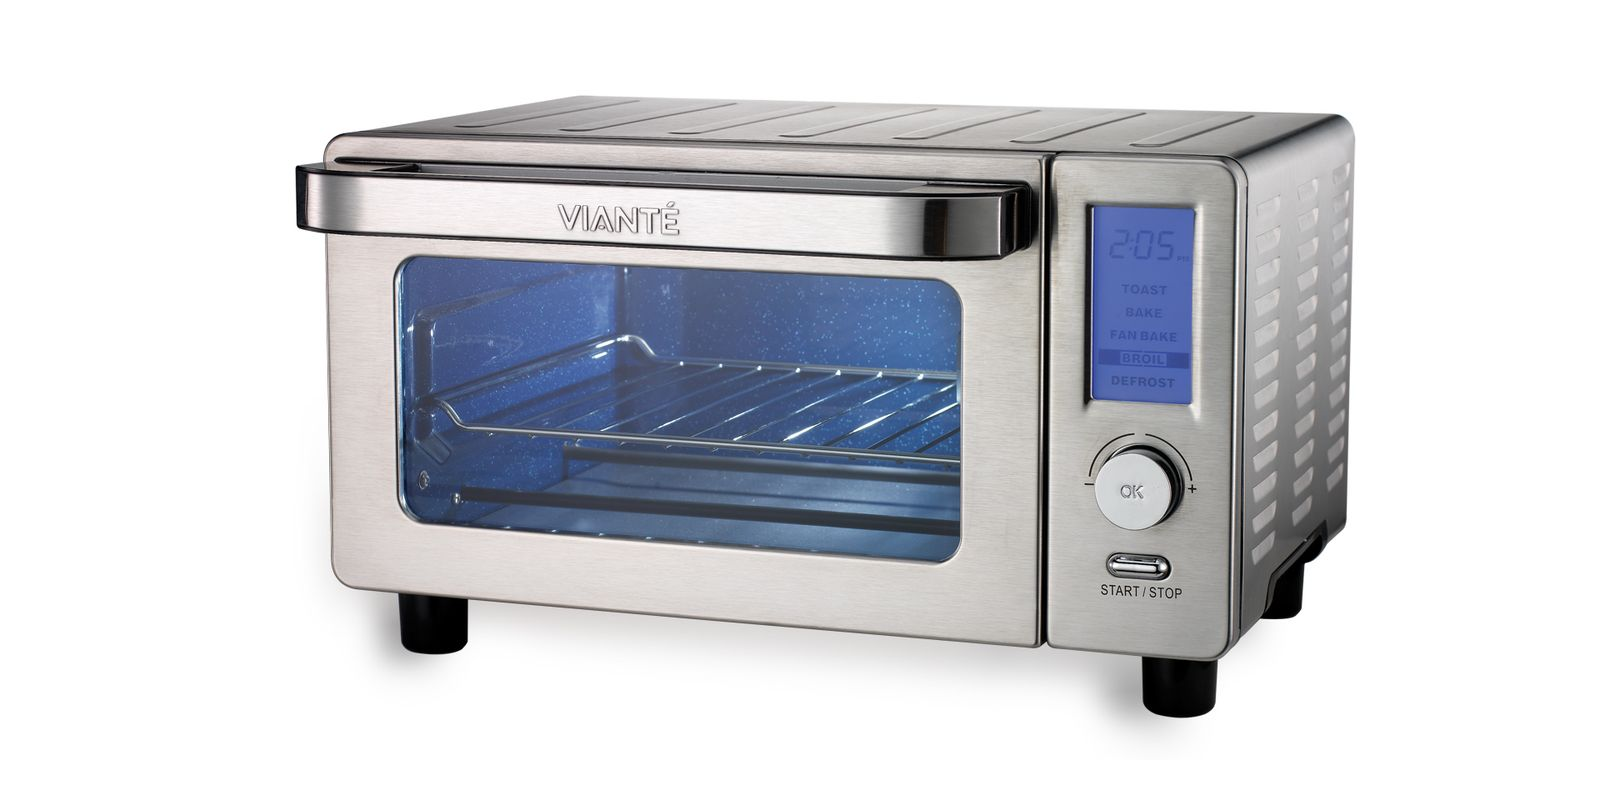 Viante True Blue Convection Toaster Oven CUC 04E Review